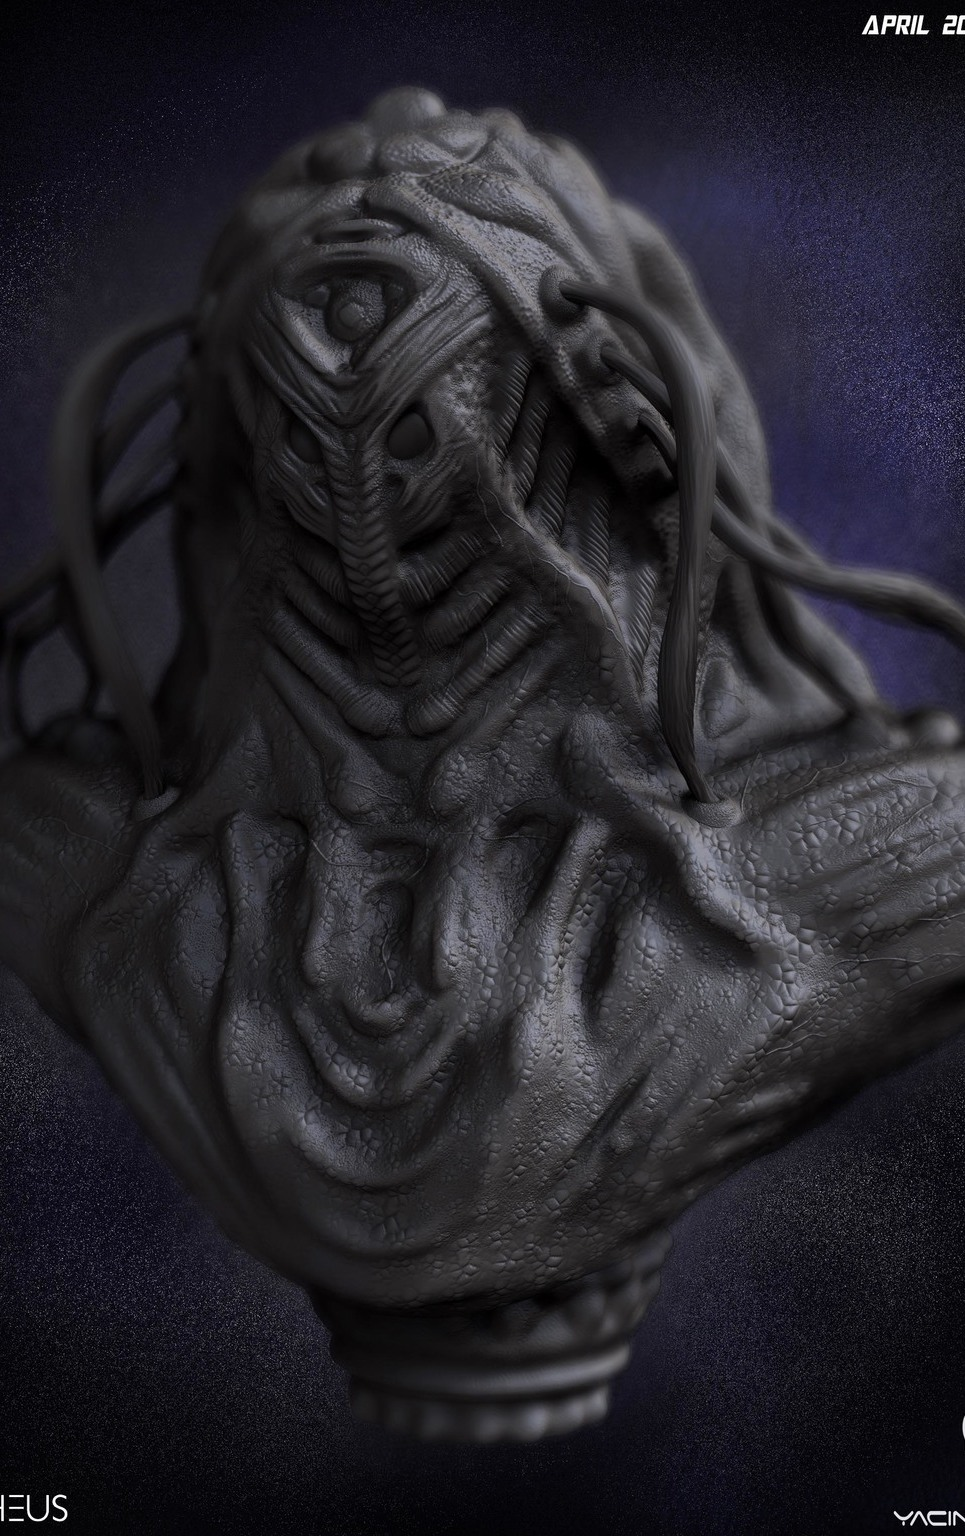 01 render high poly alien prometheus by yacine brinis show